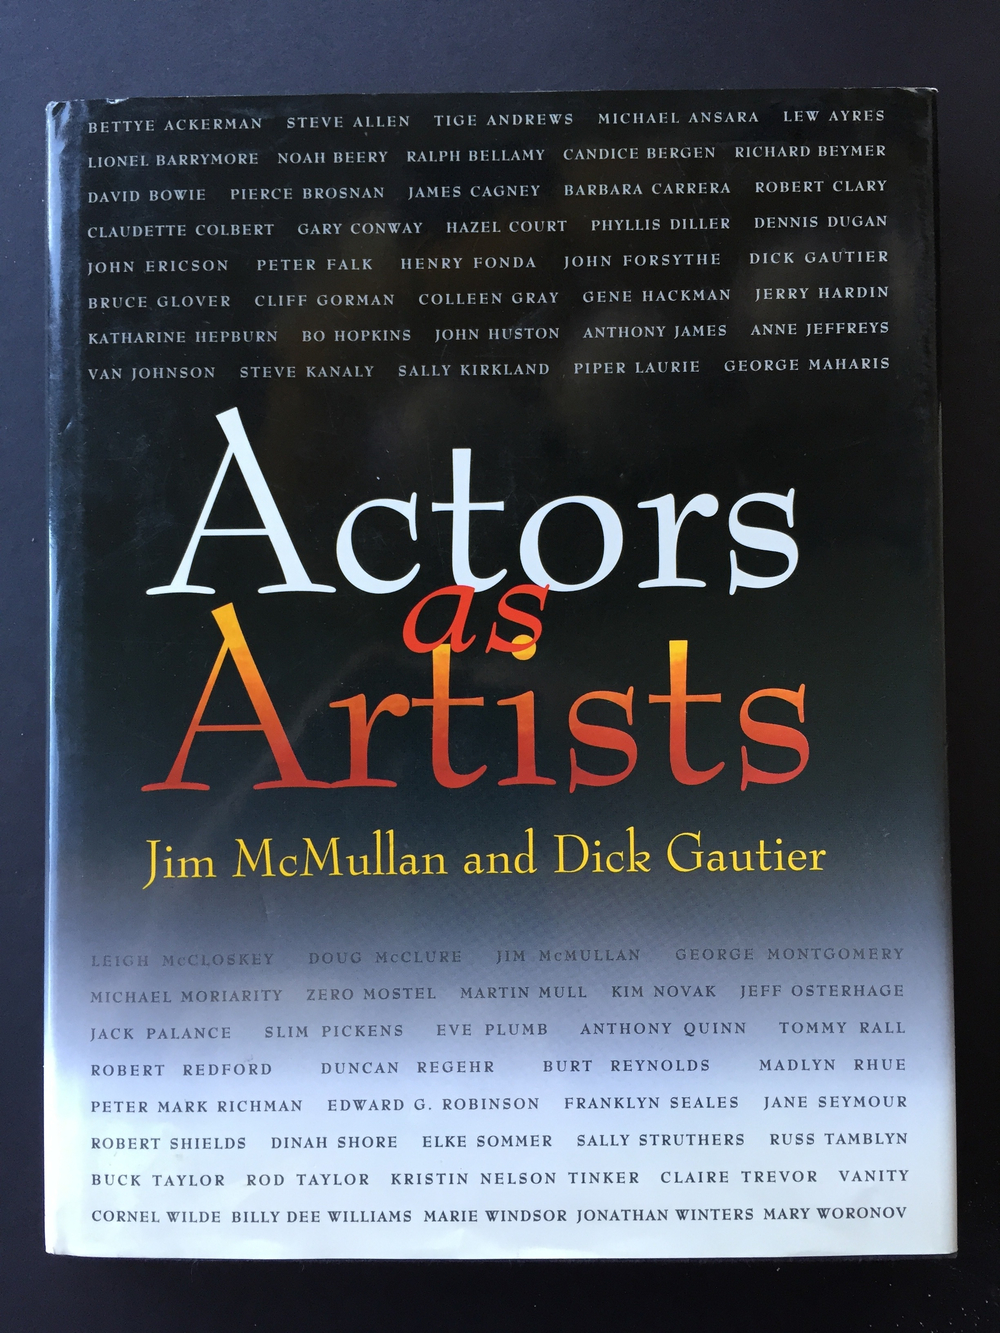 Actors as Artists